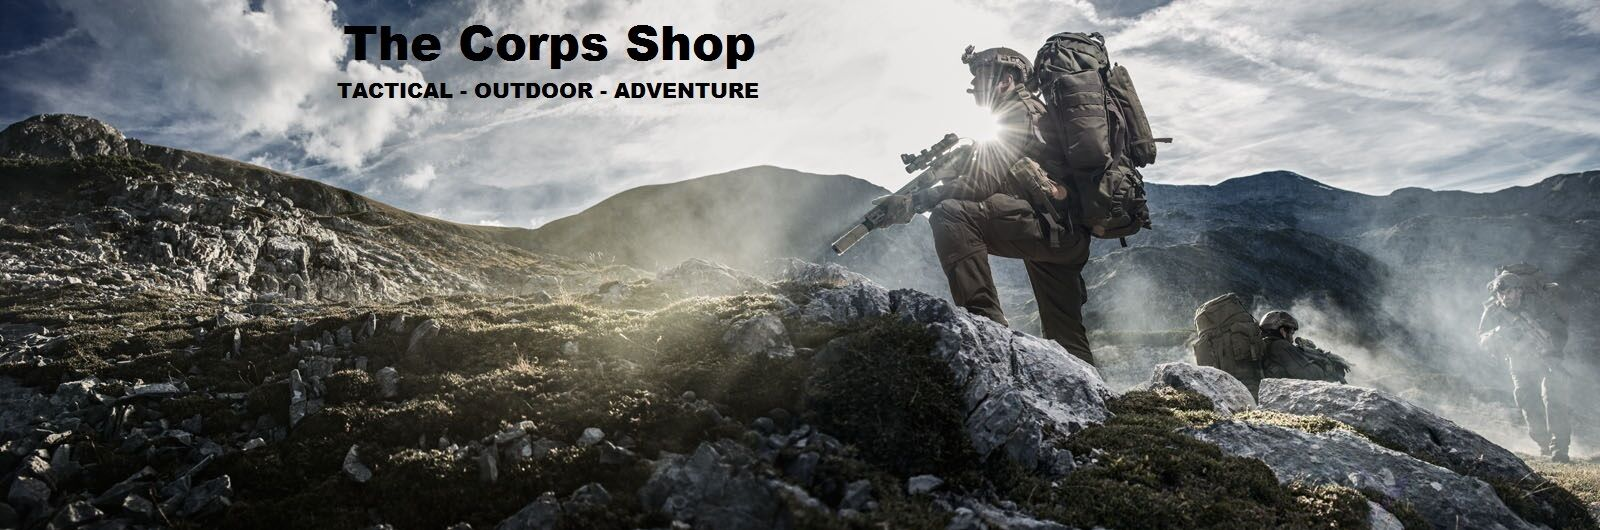 The Corps Shop